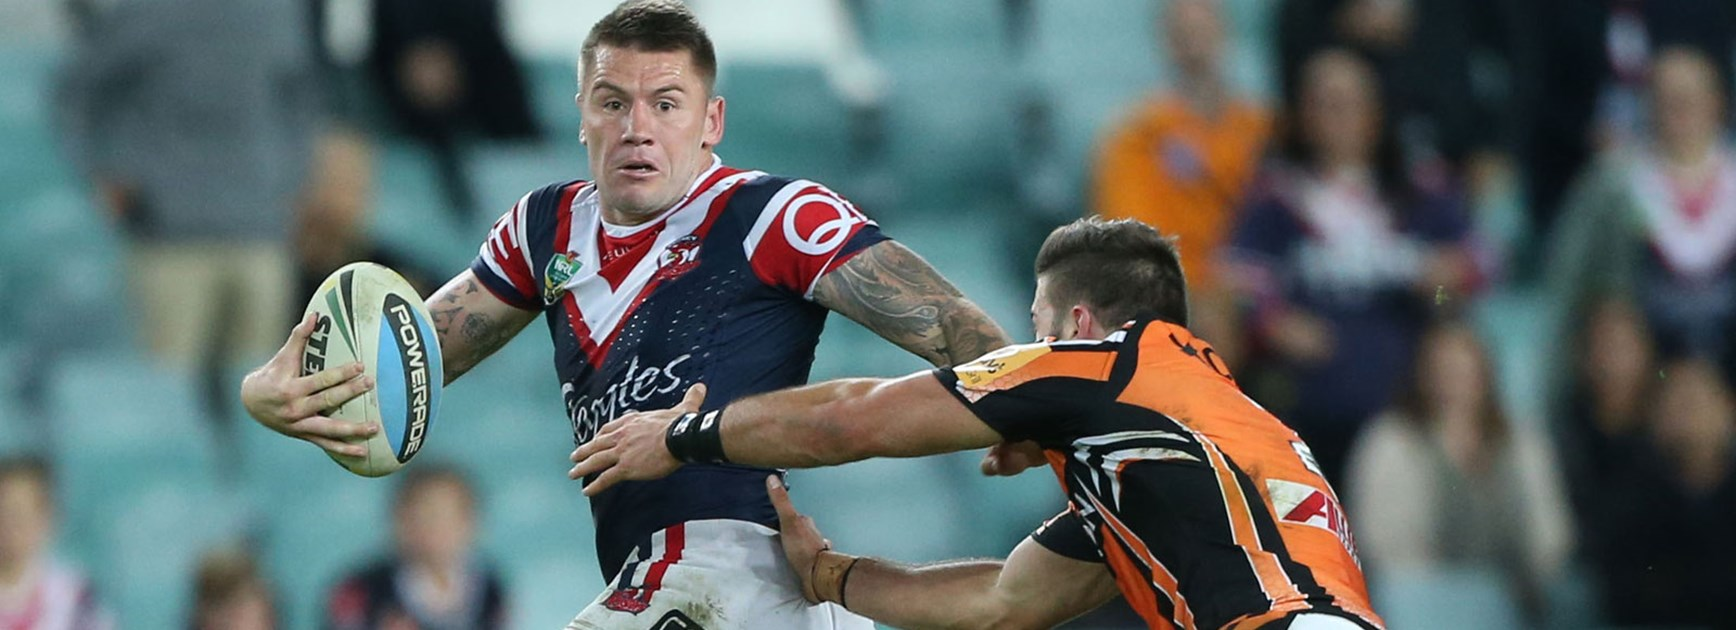 Shaun Kenny-Dowall moved to the wing in the Roosters' Round 9 win over Wests Tigers.